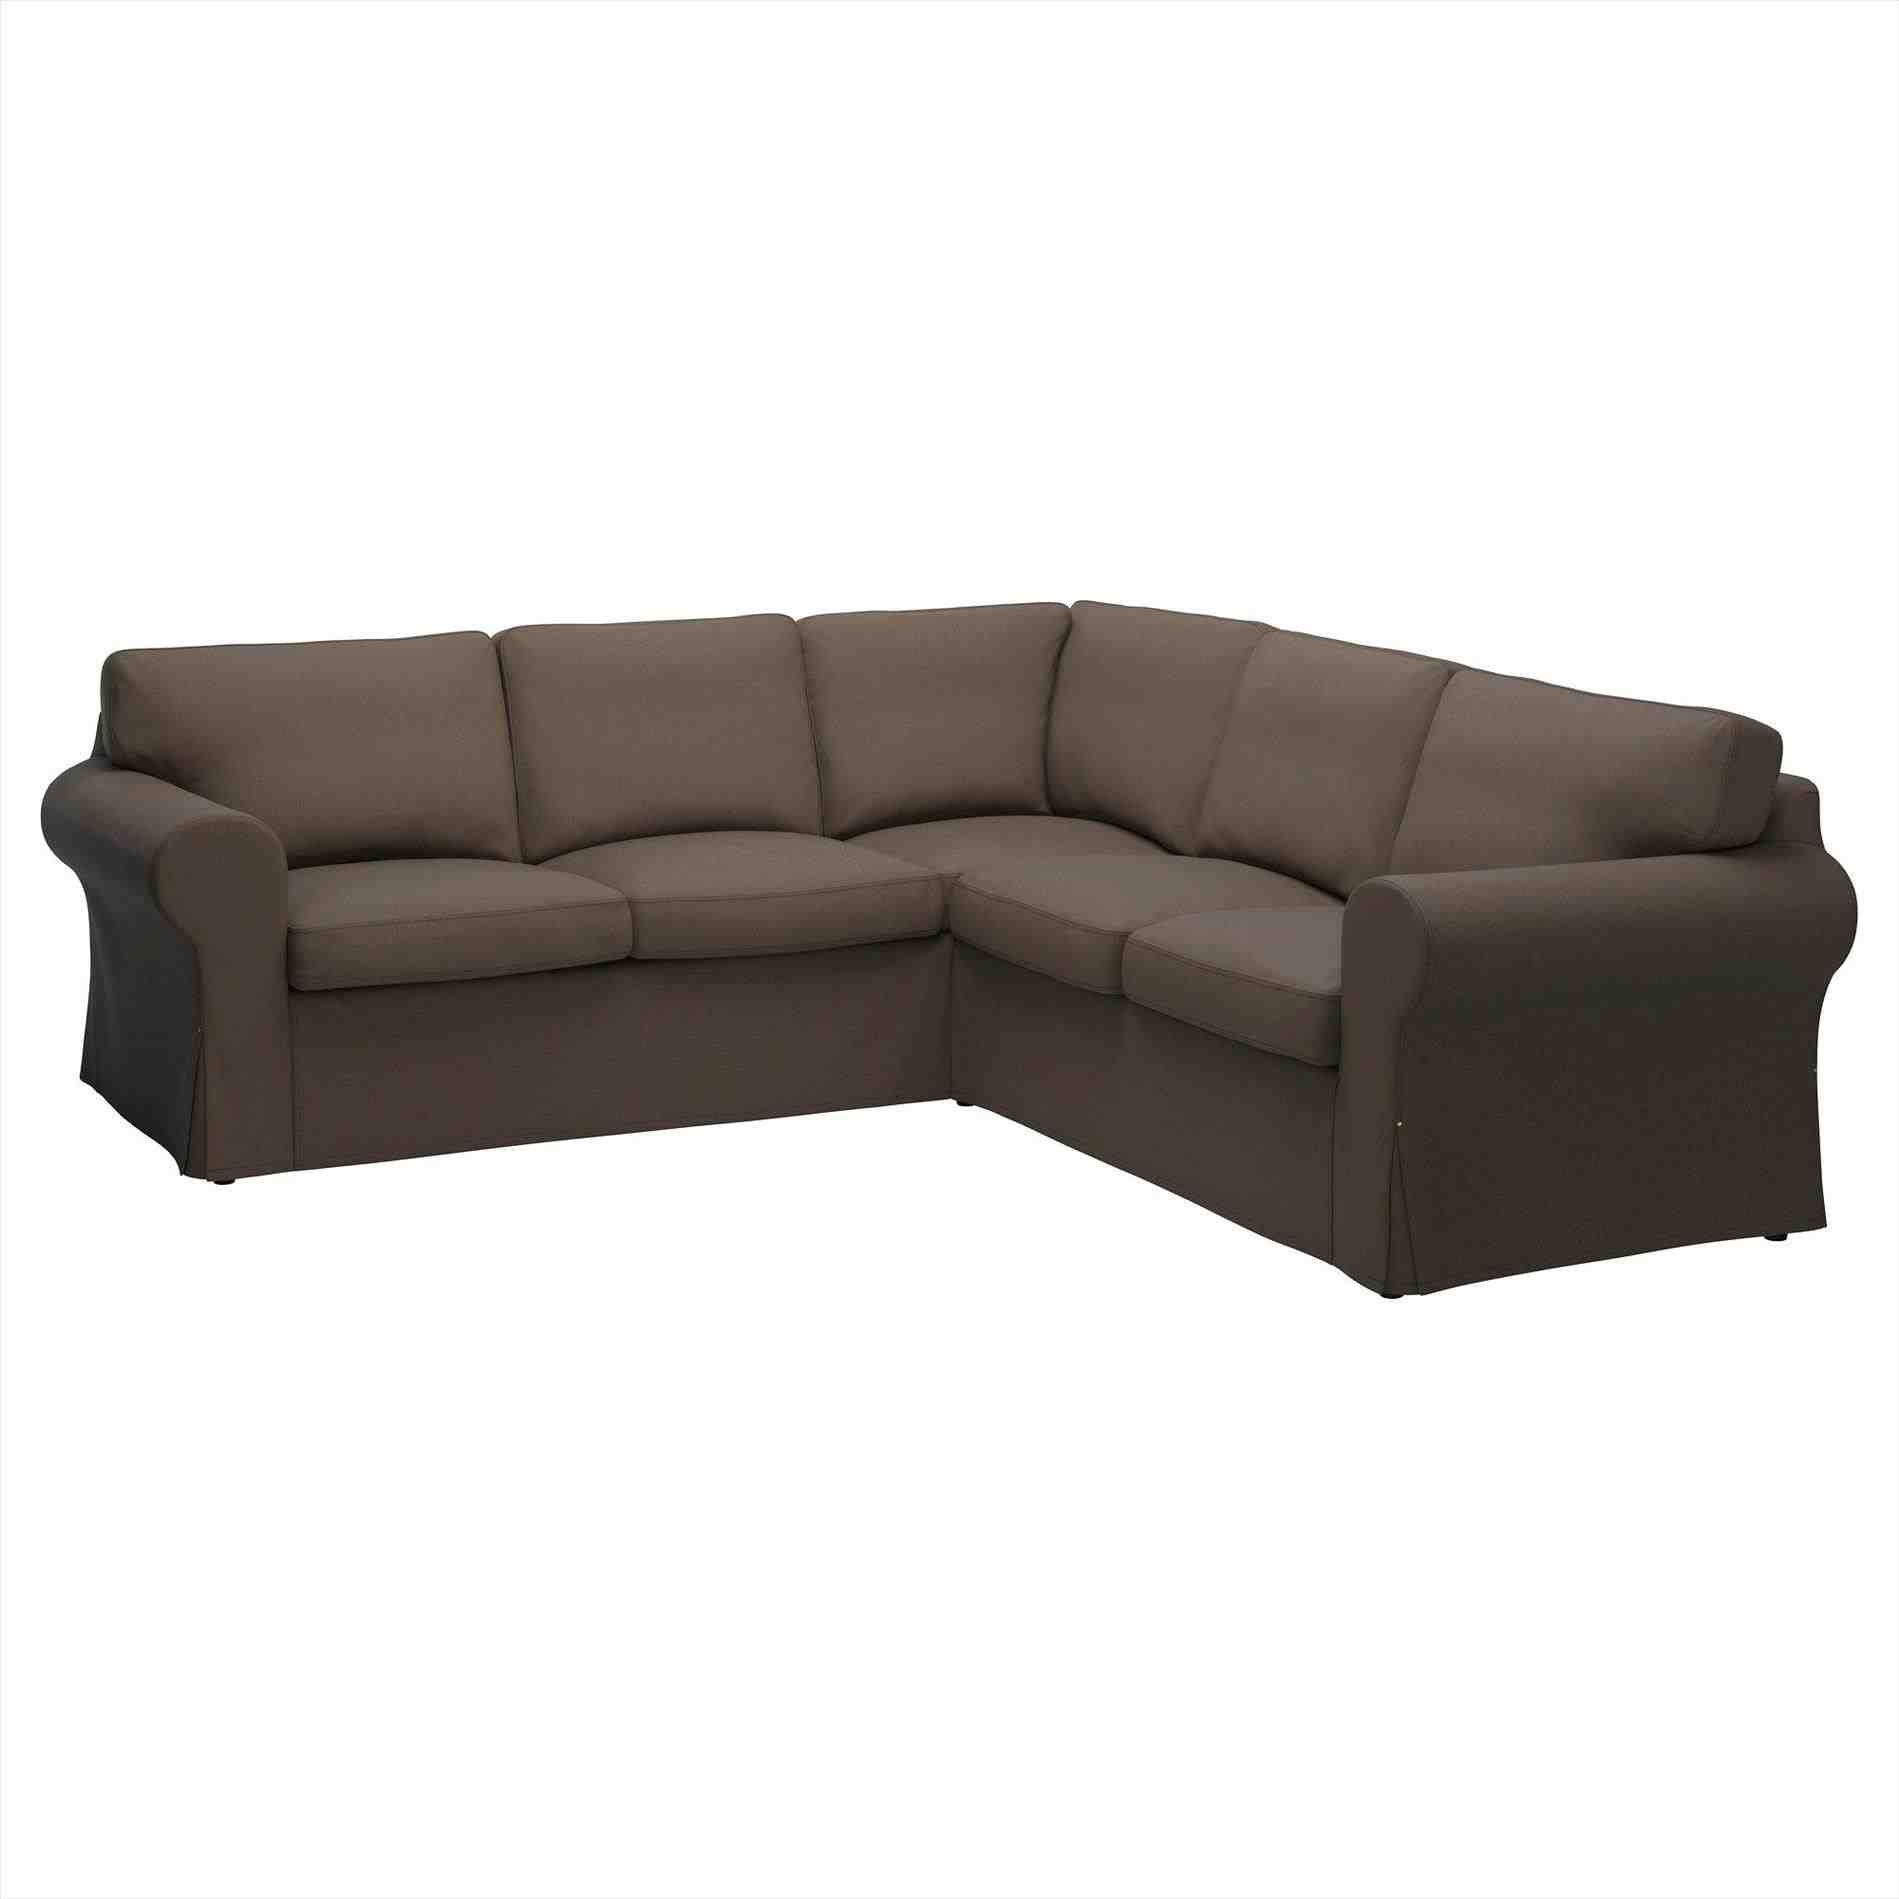 Cheap Sofa Bed Philippines Sofa Set For Philippines Home Design Furniture Philippines Family Living Room Furnit Elegant Sofa Cheap Sofa Beds Sofa Bed Design